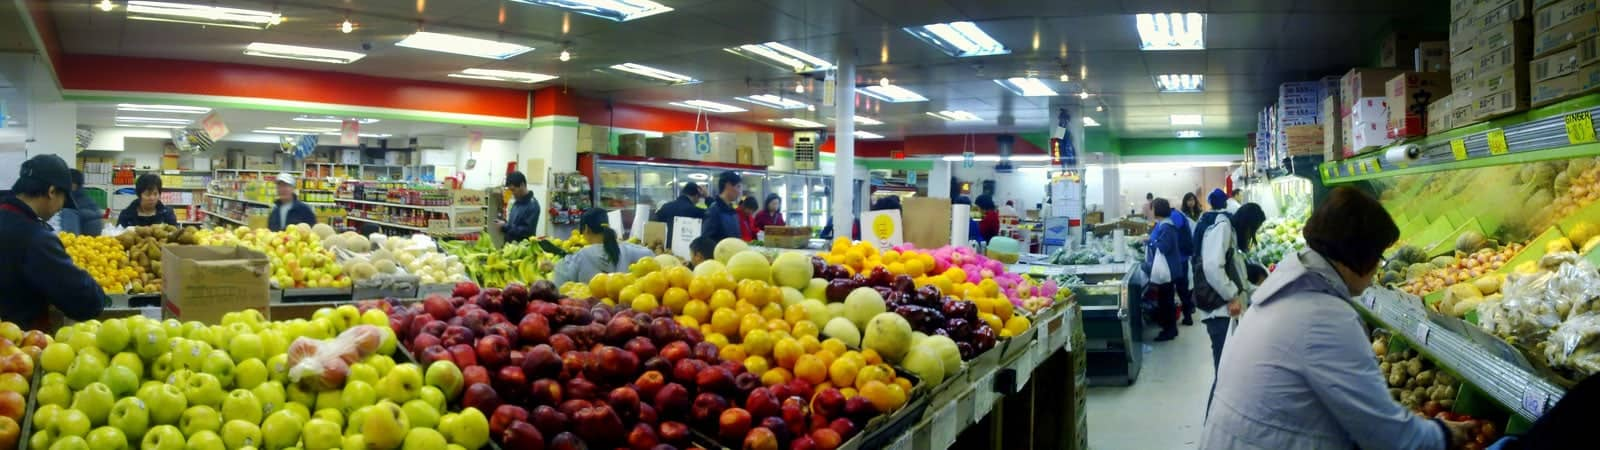 4063031766_d3138abce6_o_groceries_1600x450